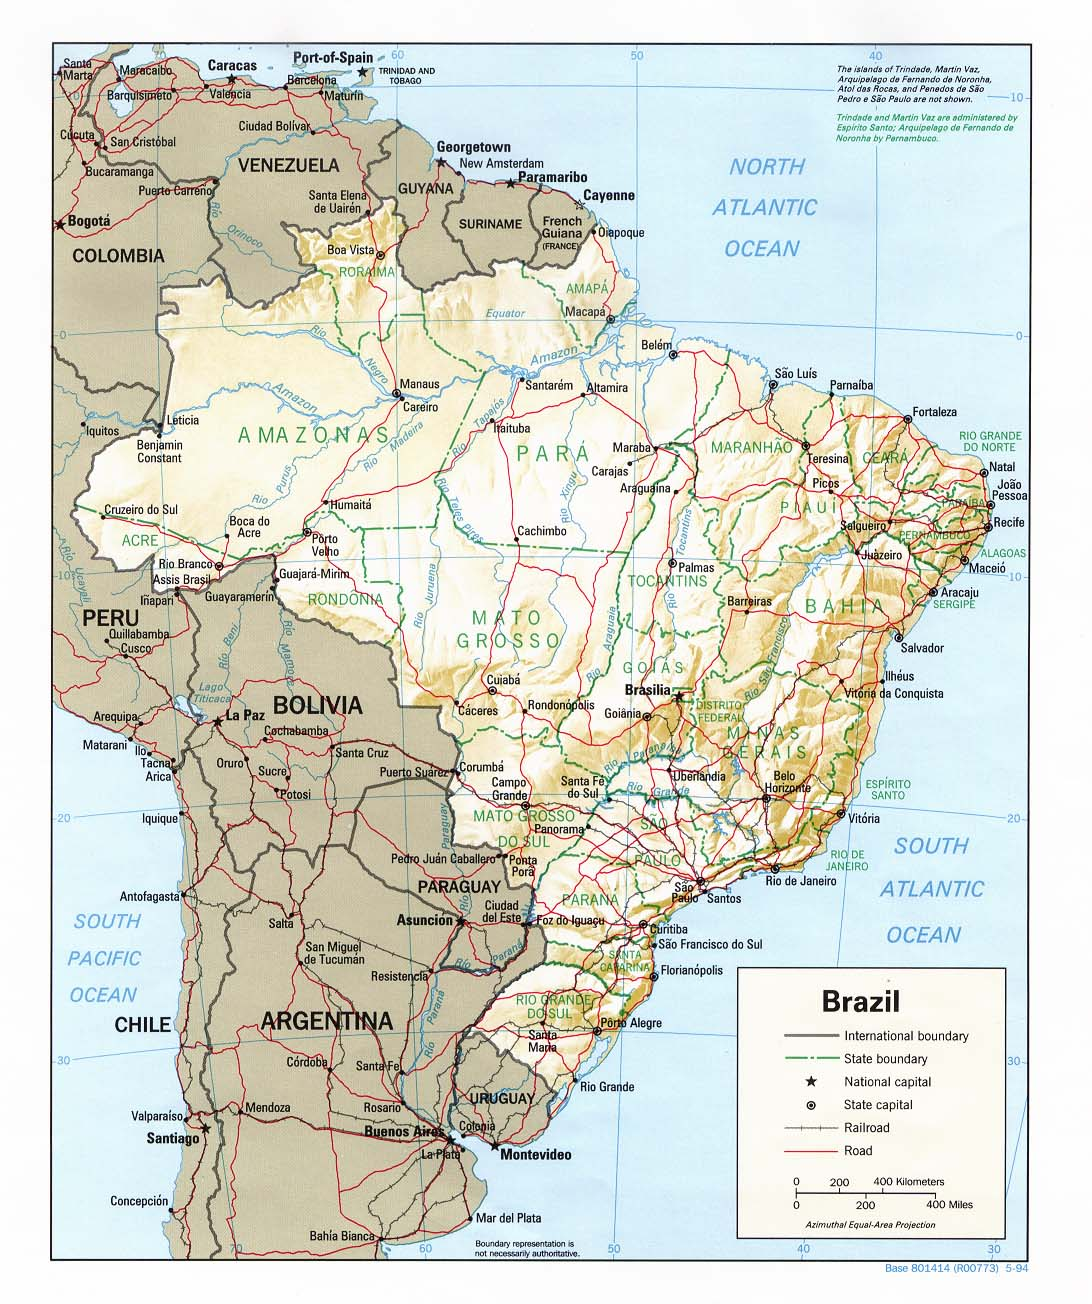 Brazil Shading Relief Map